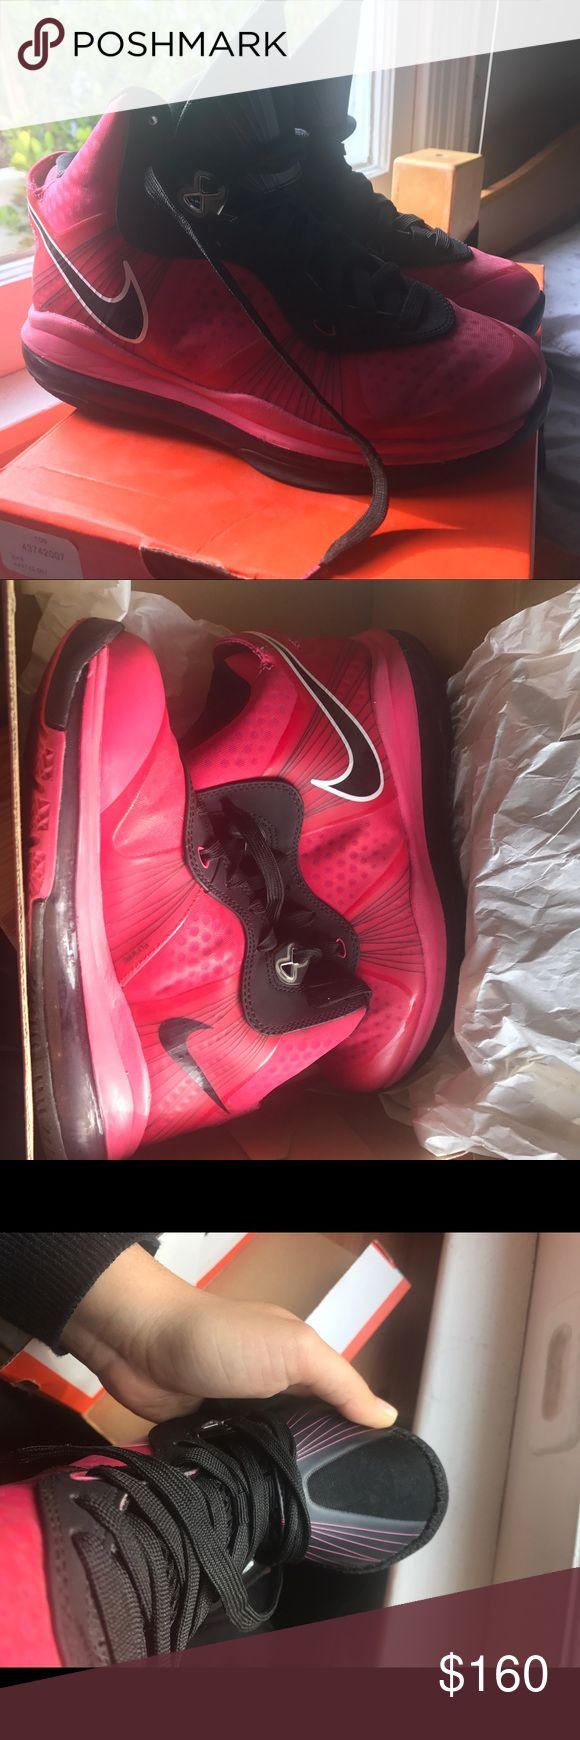 Rare Hot Pink & Black Lebron 8  V2 Excellent used condition, I've worn it a handful of times about 6 years ago, and haven't worn them since. No damages but is a bit dirty on the bottom, shows no signs of wear and tear. Size 4 Youth which is equivalent to about size 5-5.5women's. Very hard to find basketball shoes, going for over $300 on ebay. Comes with Nike box, but isn't the original box. Make an offer if interested!! Nike Shoes Athletic Shoes